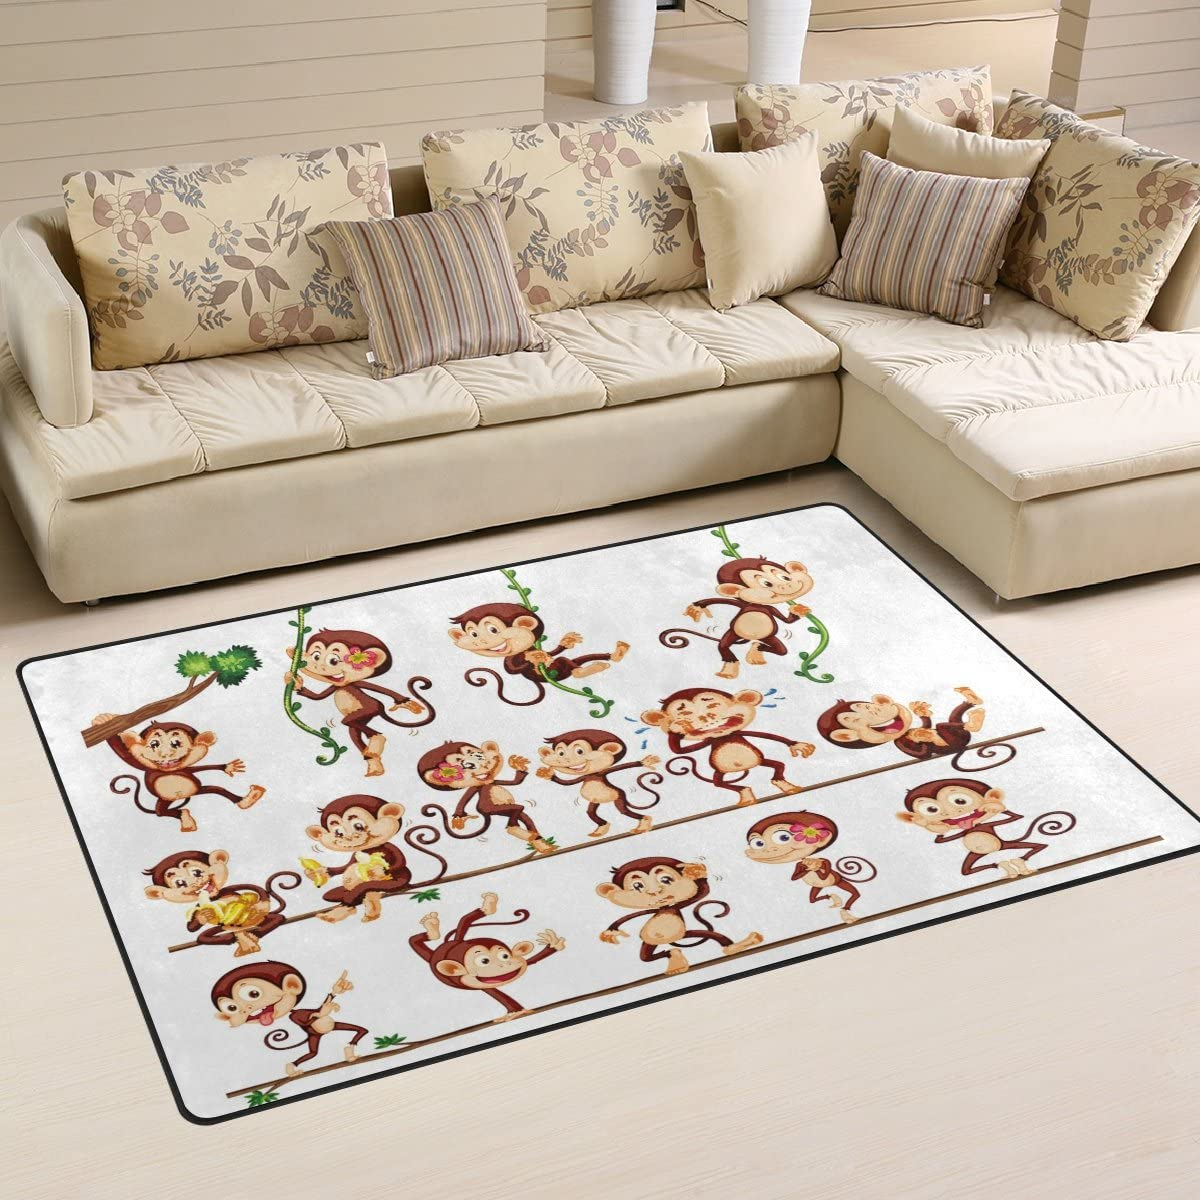 WOZO Monkey Doing Different Actions Area Rug Rugs Non-Slip Floor Mat Doormats Living Dining Room Bedroom Dorm 60 x 39 inches inches Home Decor